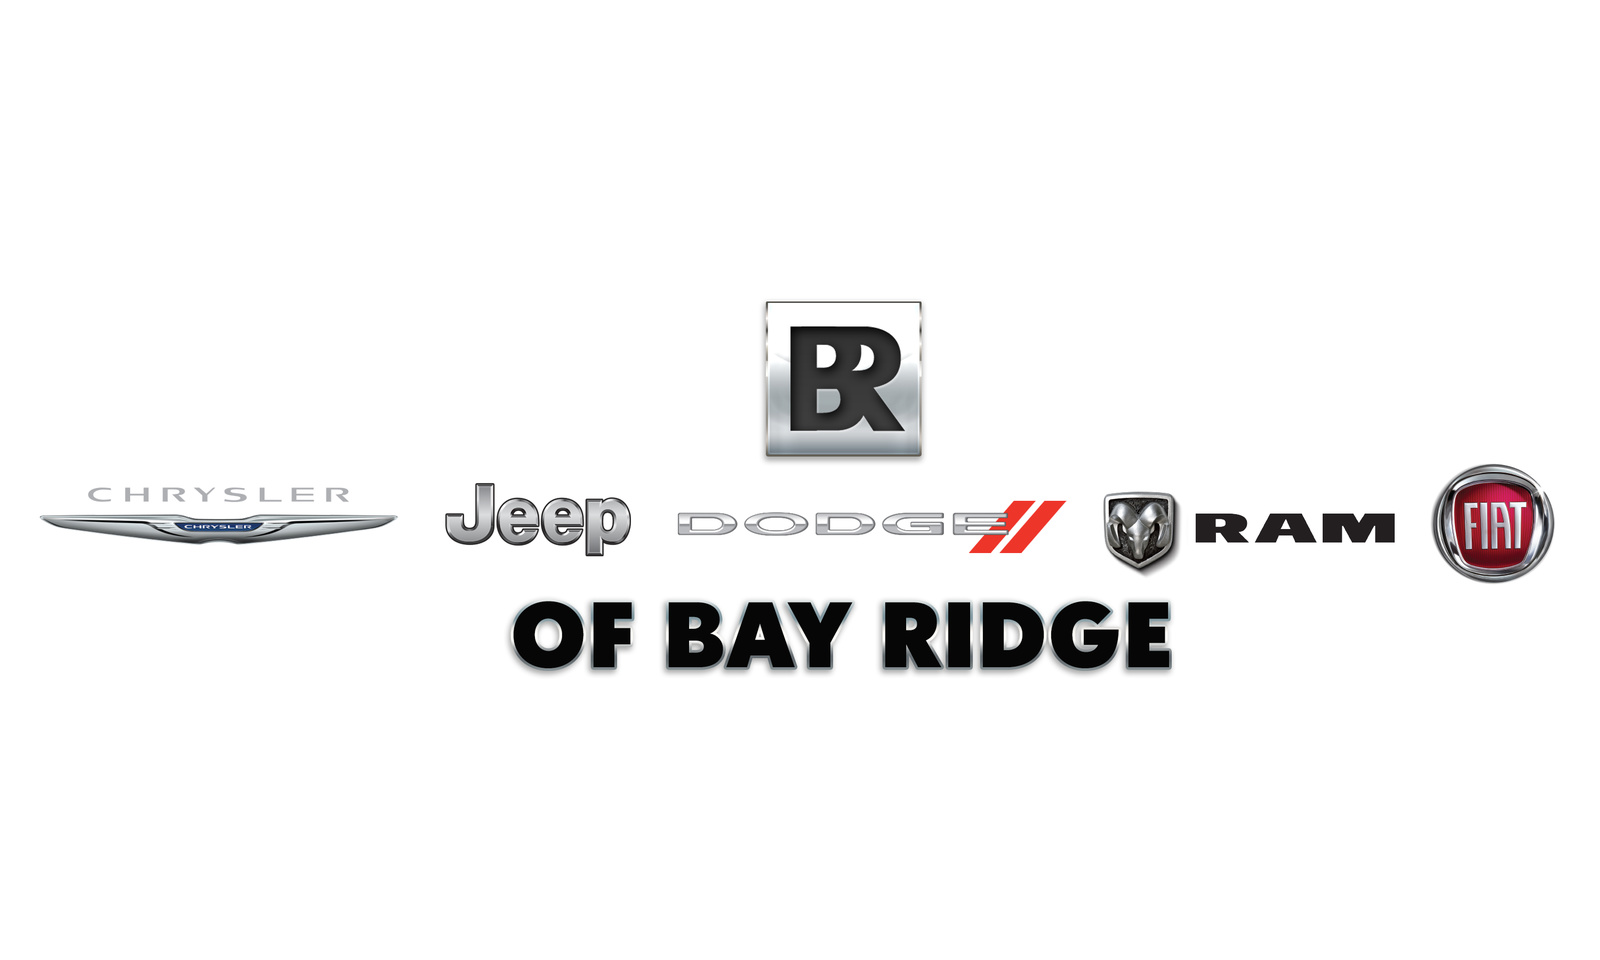 Chrysler Dodge Jeep Ram of Bay Ridge - Brooklyn, NY: Read ...